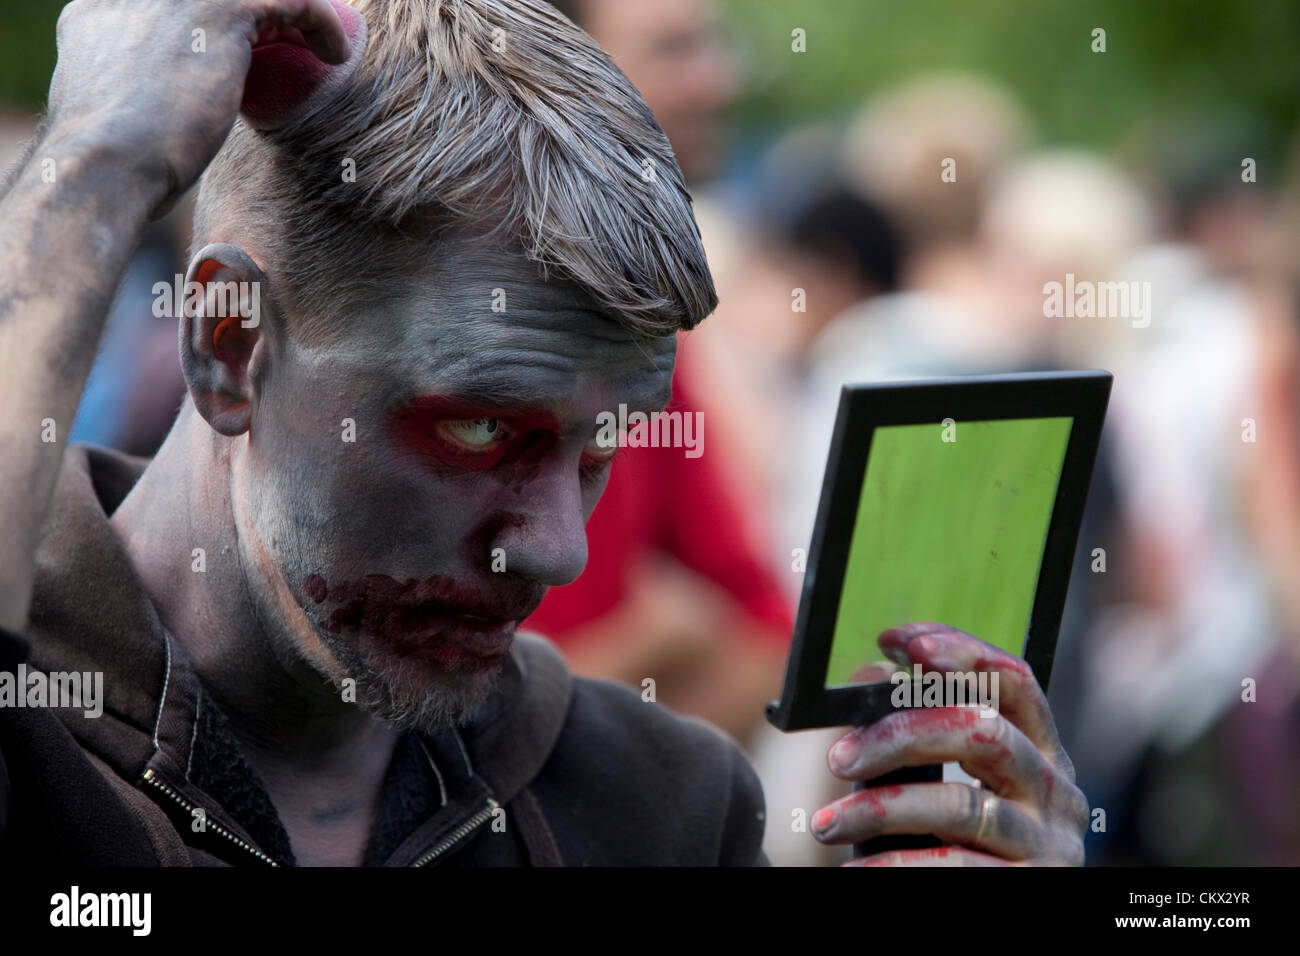 A Zombie at Stockholm Zombie Walk 2012. A guy putting the finishing touches on his zombie makeup. - Stock Image